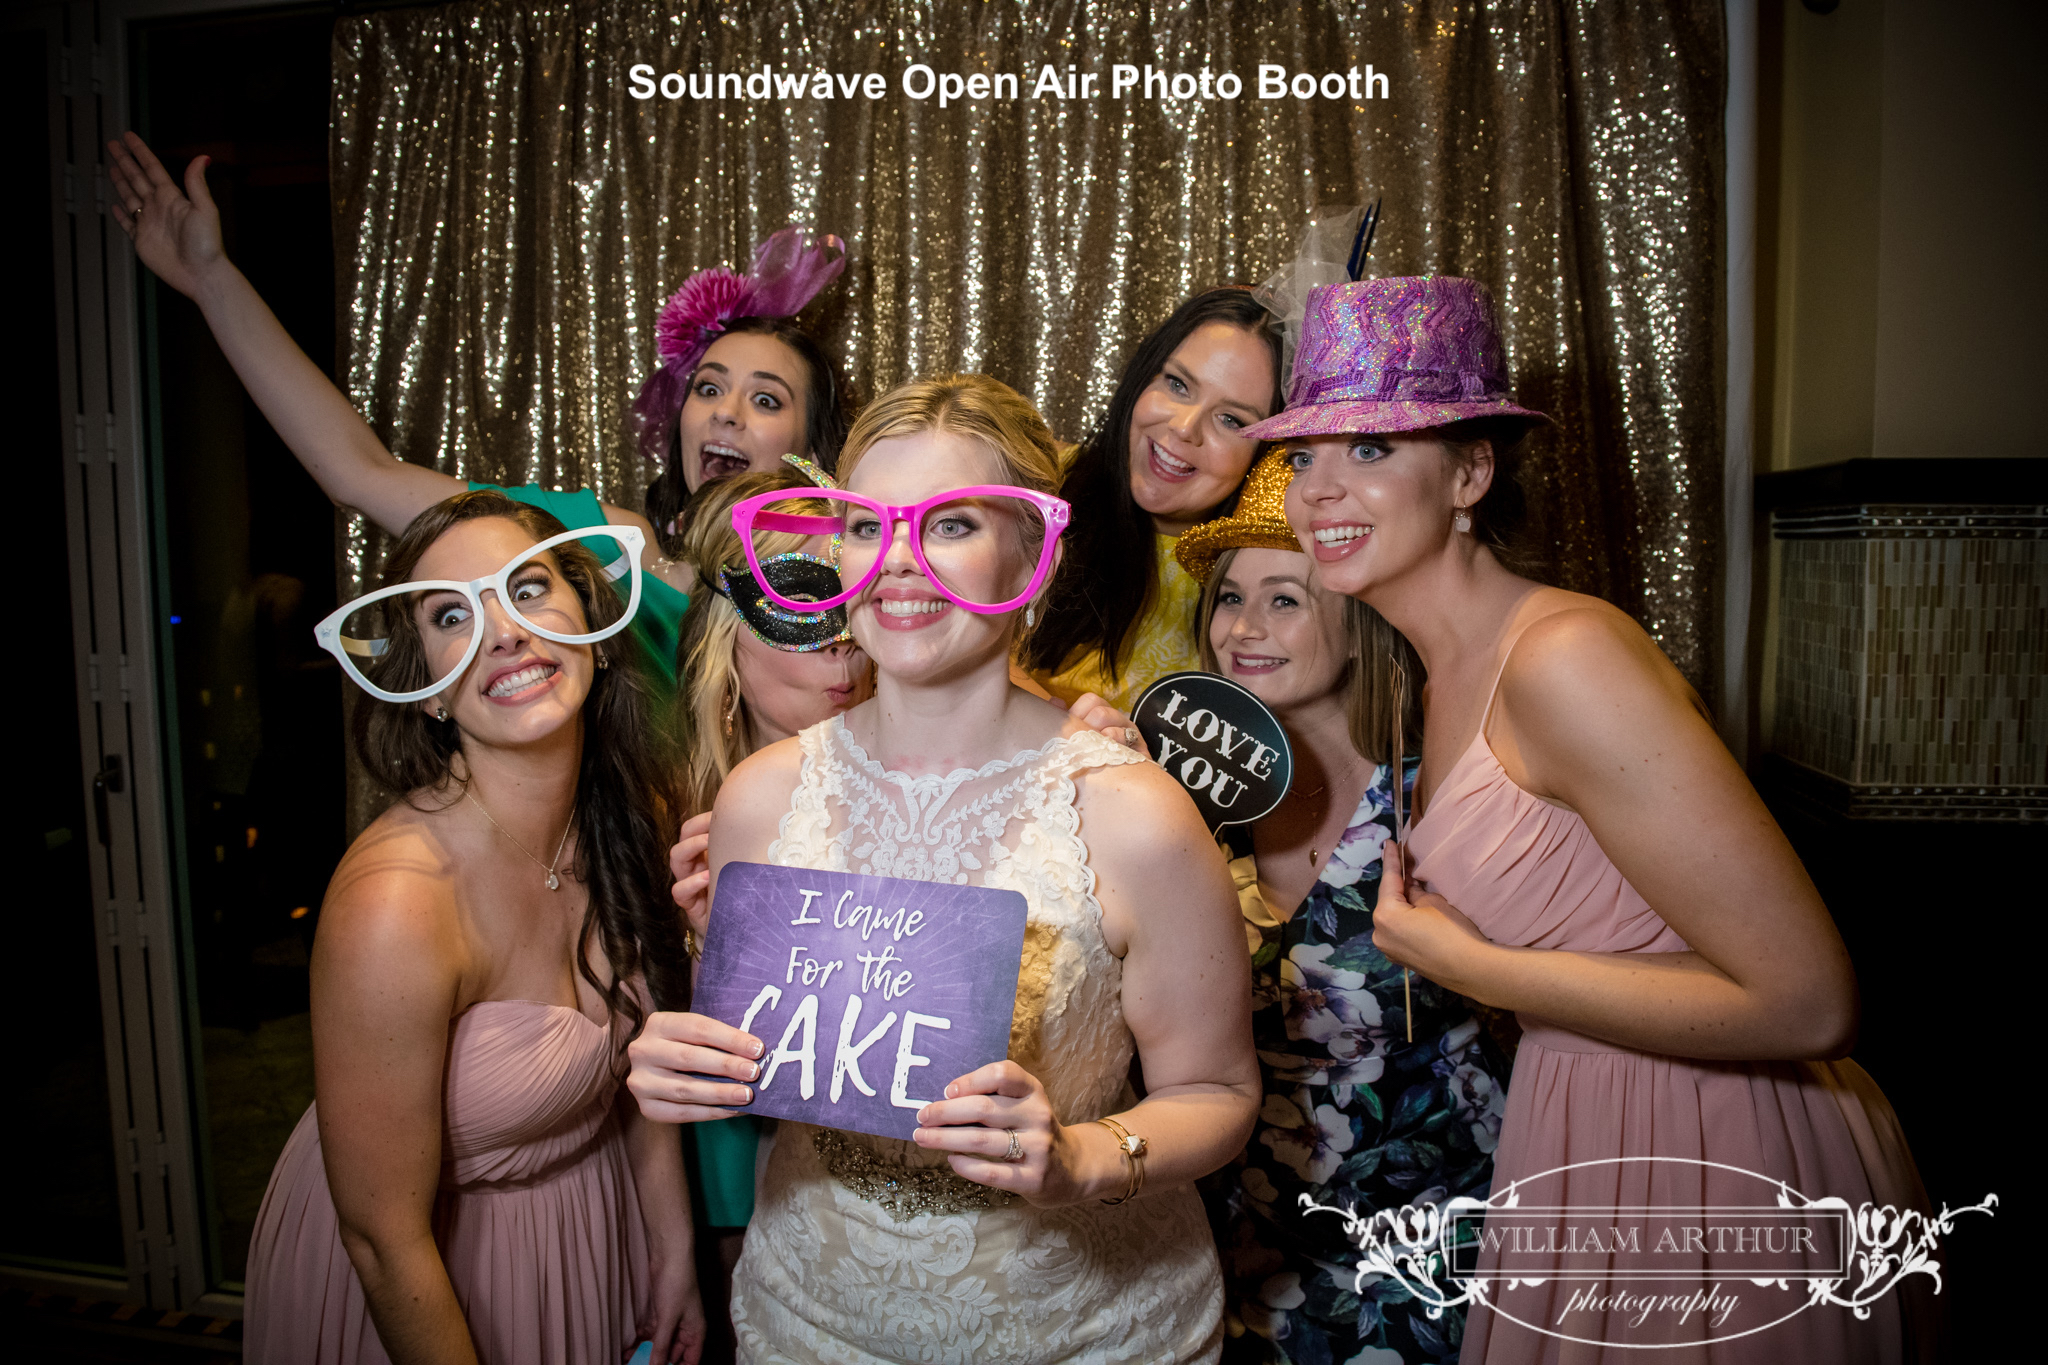 reunion resort - orlando wedding venue - orlando photo booth - soundwave entertainment - wedding blog - orlando, fl